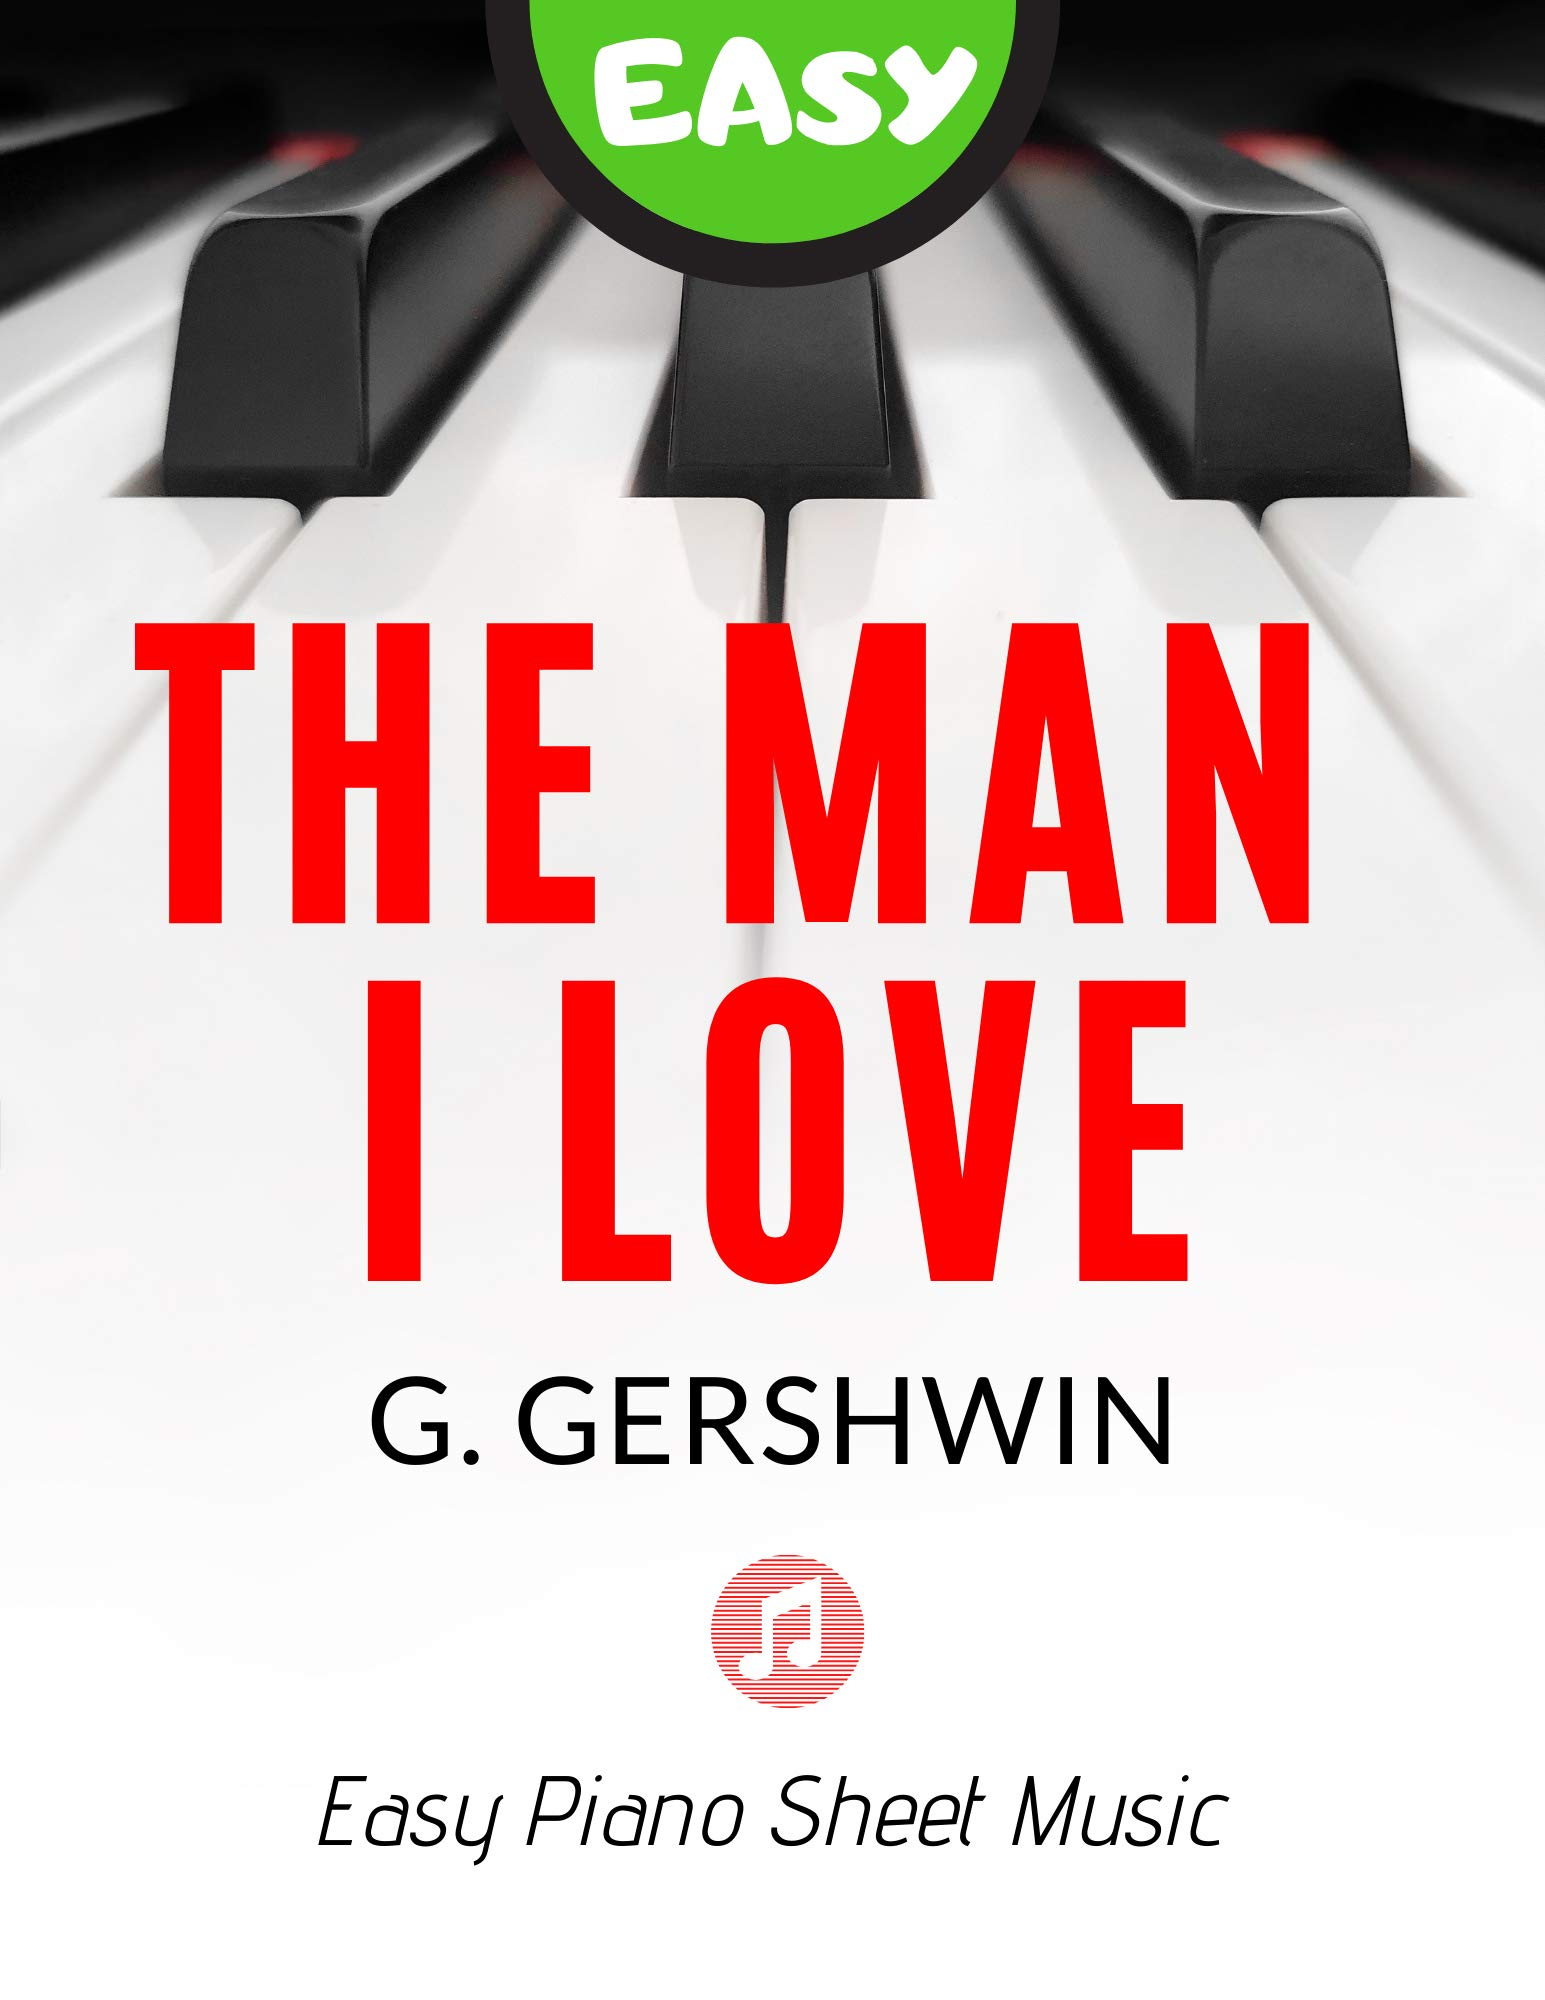 The Man I Love – Gershwin - Easy Piano Sheet Music Note for Beginners - Video Tutorial: Teach Yourself How to Play Popular, Jazz Song, a Valentine's Day piano solo for Kids, Adults, Seniors BIG Notes